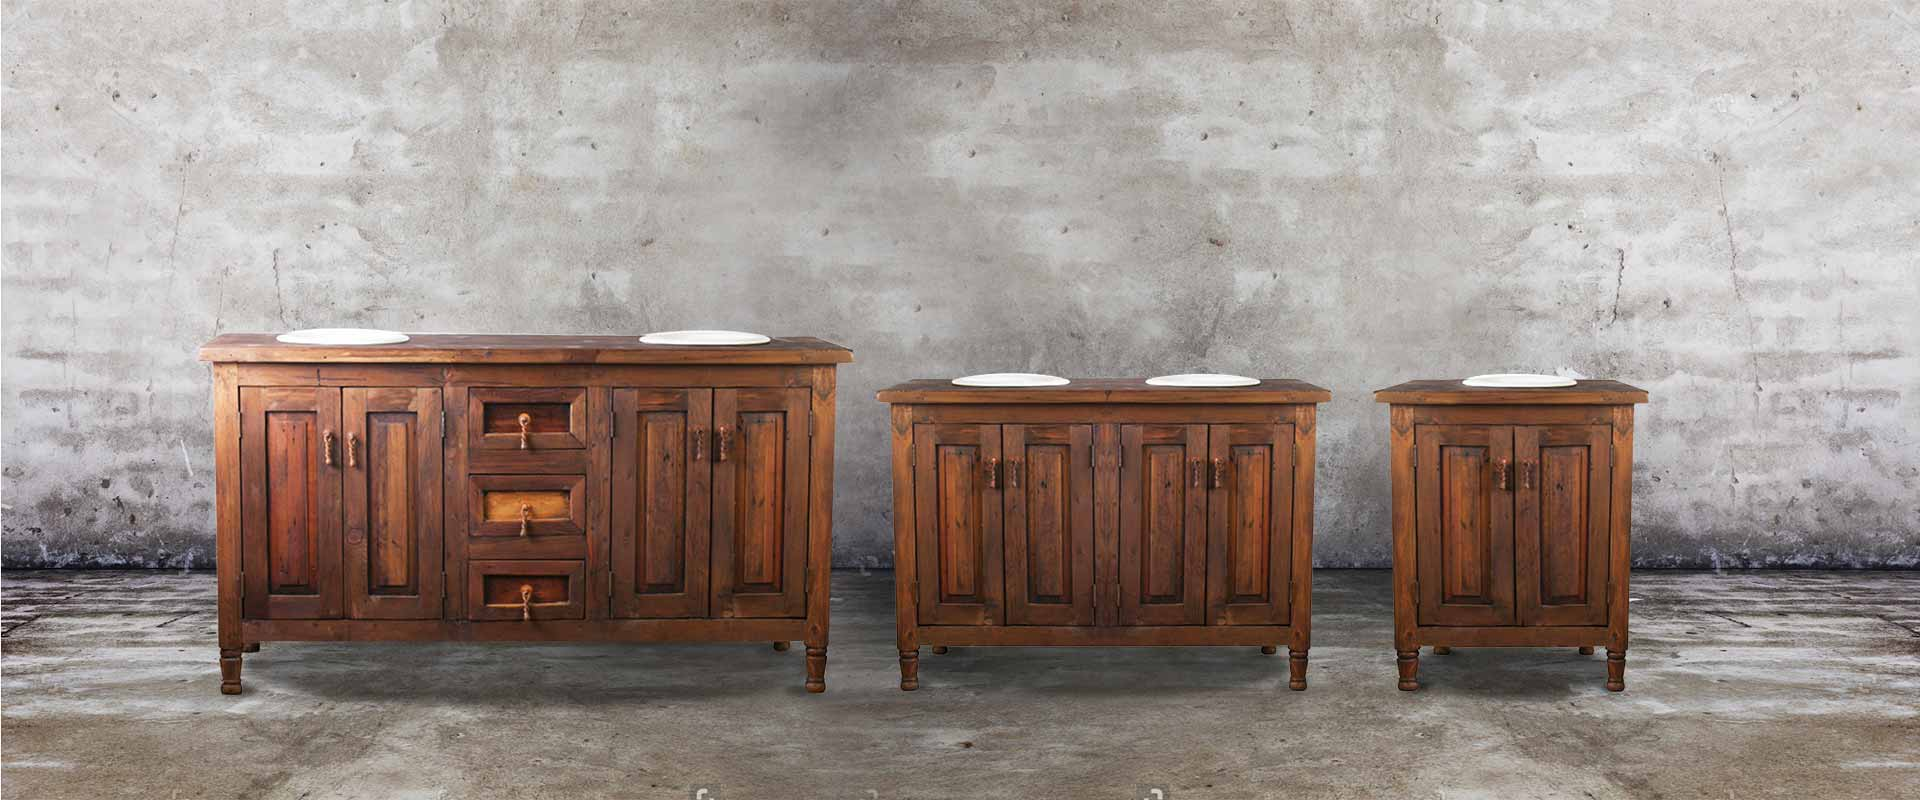 Bathroom Sinks San Antonio buy rustic handcrafted home decor products in texas | custom